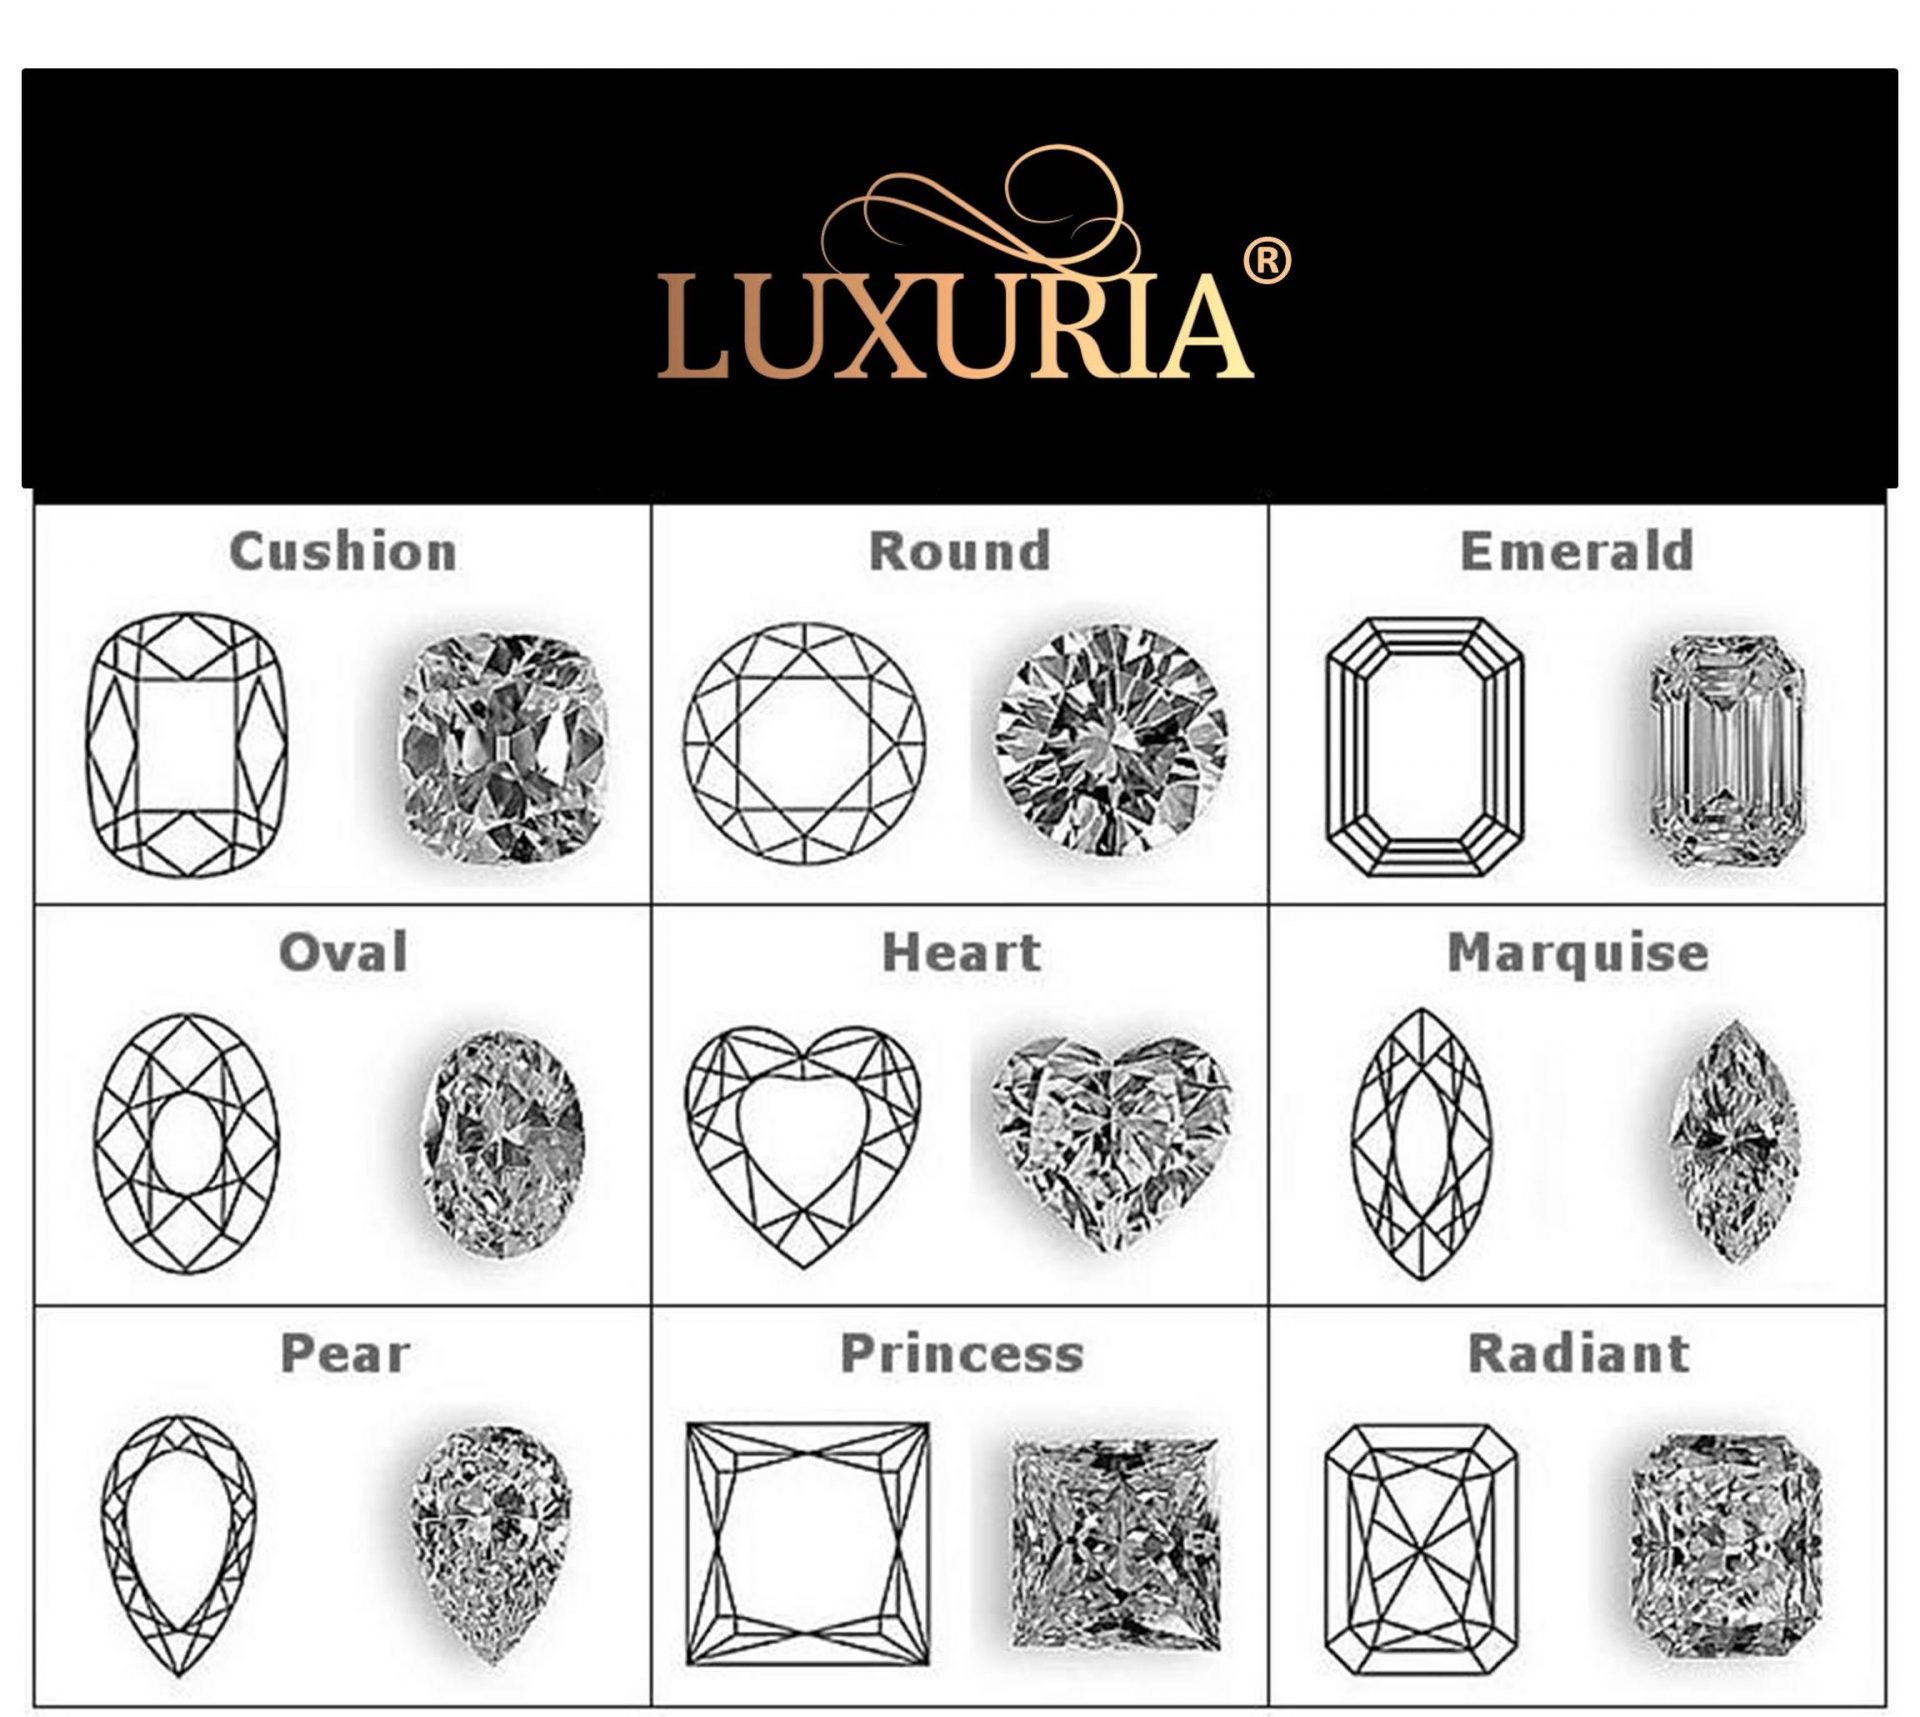 Luxuria jewellery - Diamond shapes for Sterling Silver Engagement ring